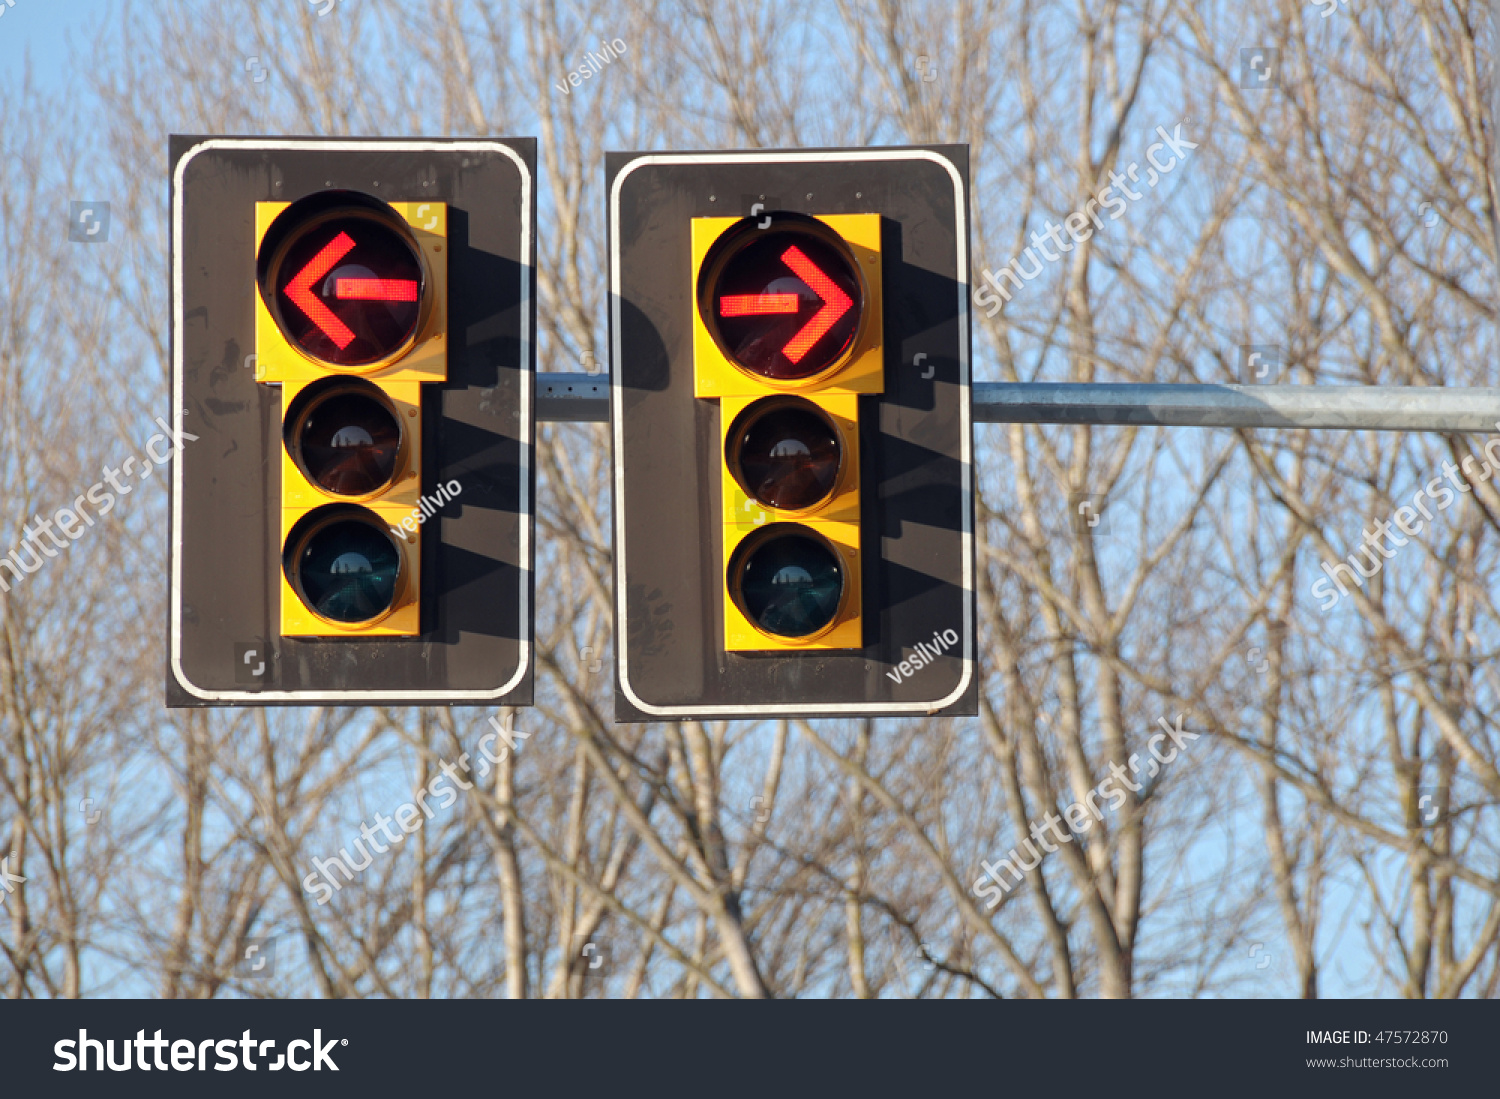 stock-photo-traffic-lights-with-red-arrow-to-ban-both-left-and-right-turn-47572870.jpg